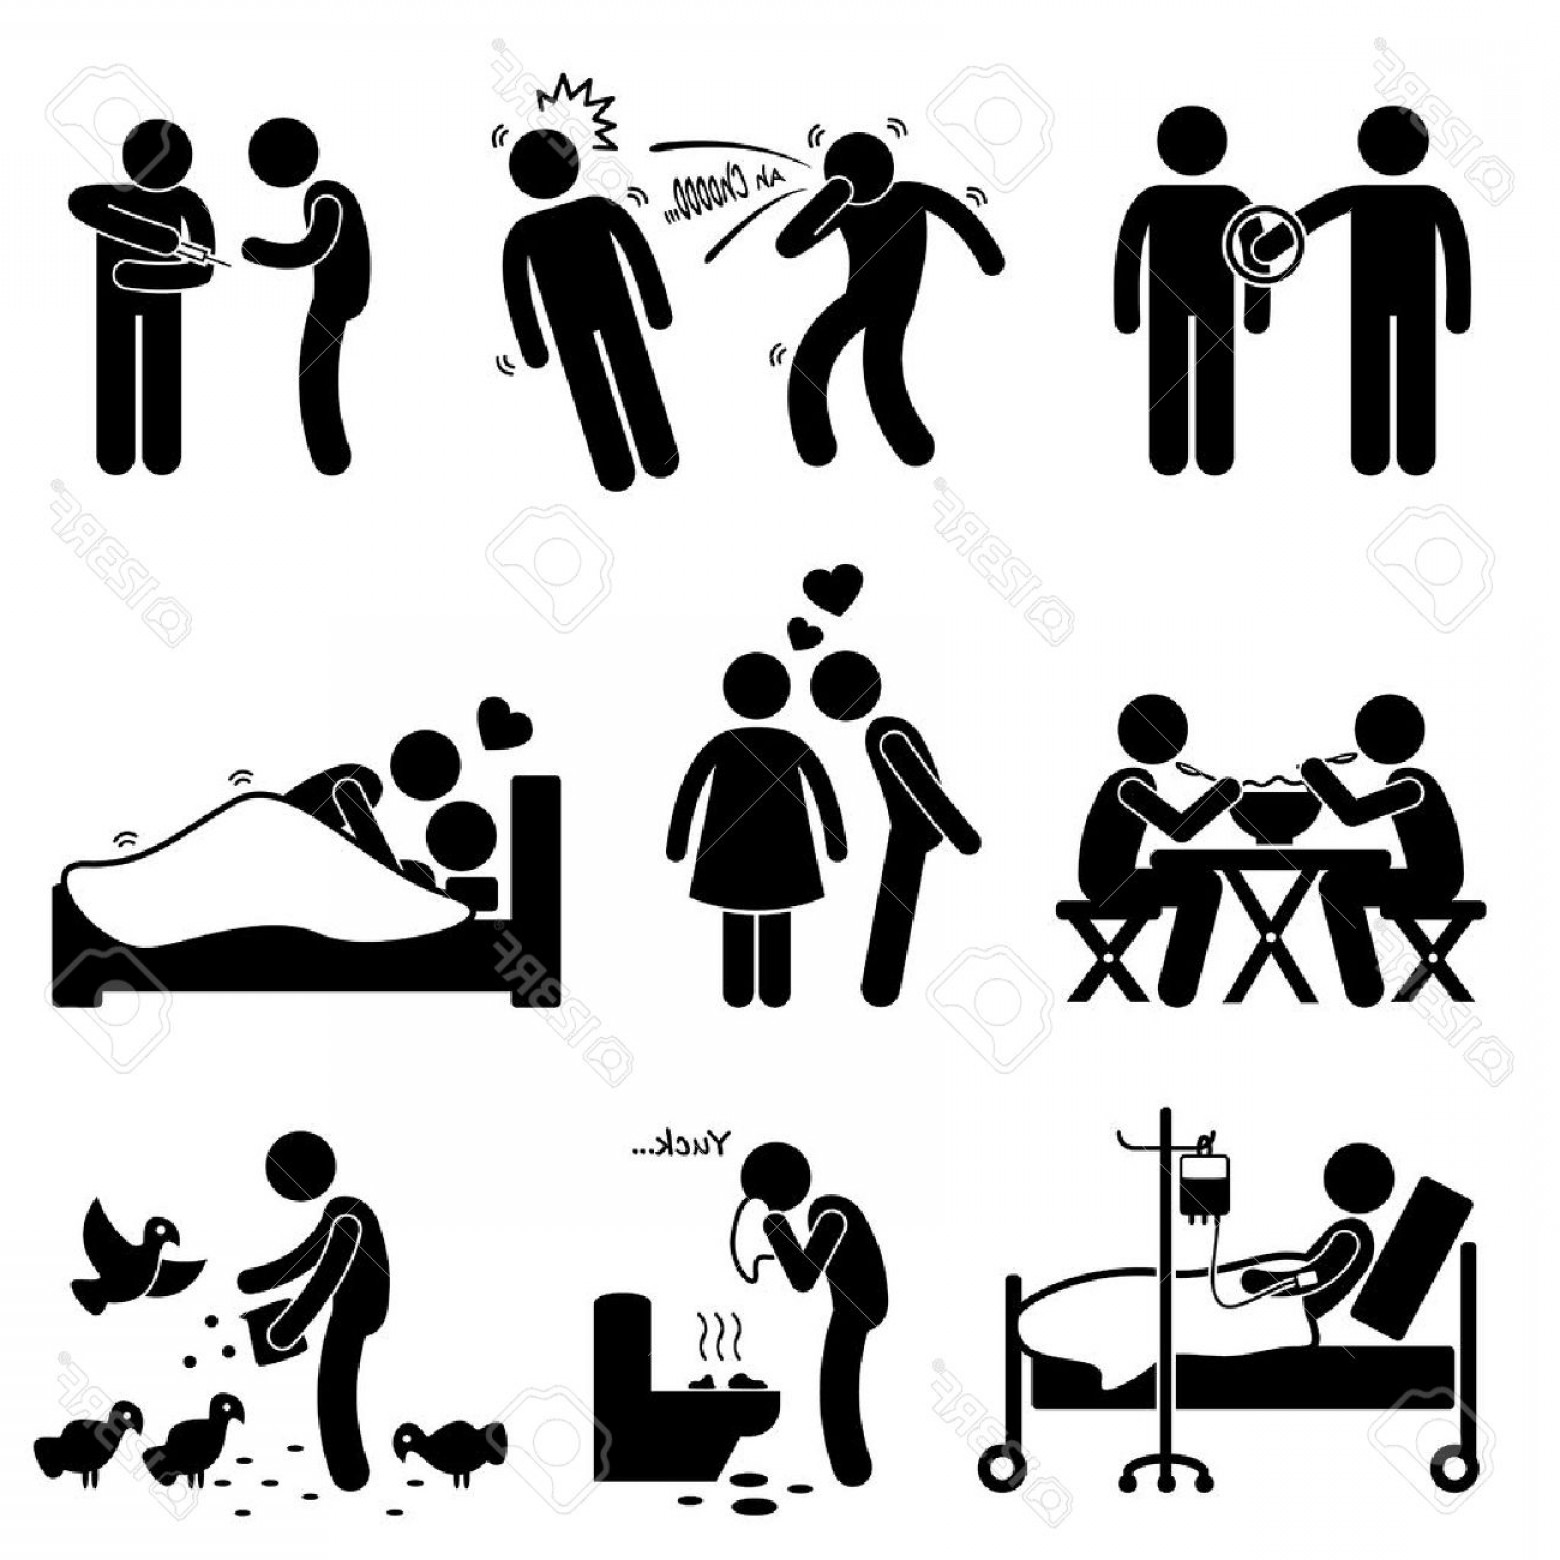 Diseases Spread By Vectors: Photostock Vector Virus Spread Diseases Transmission Infections Ways Stick Figure Pictogram Icons